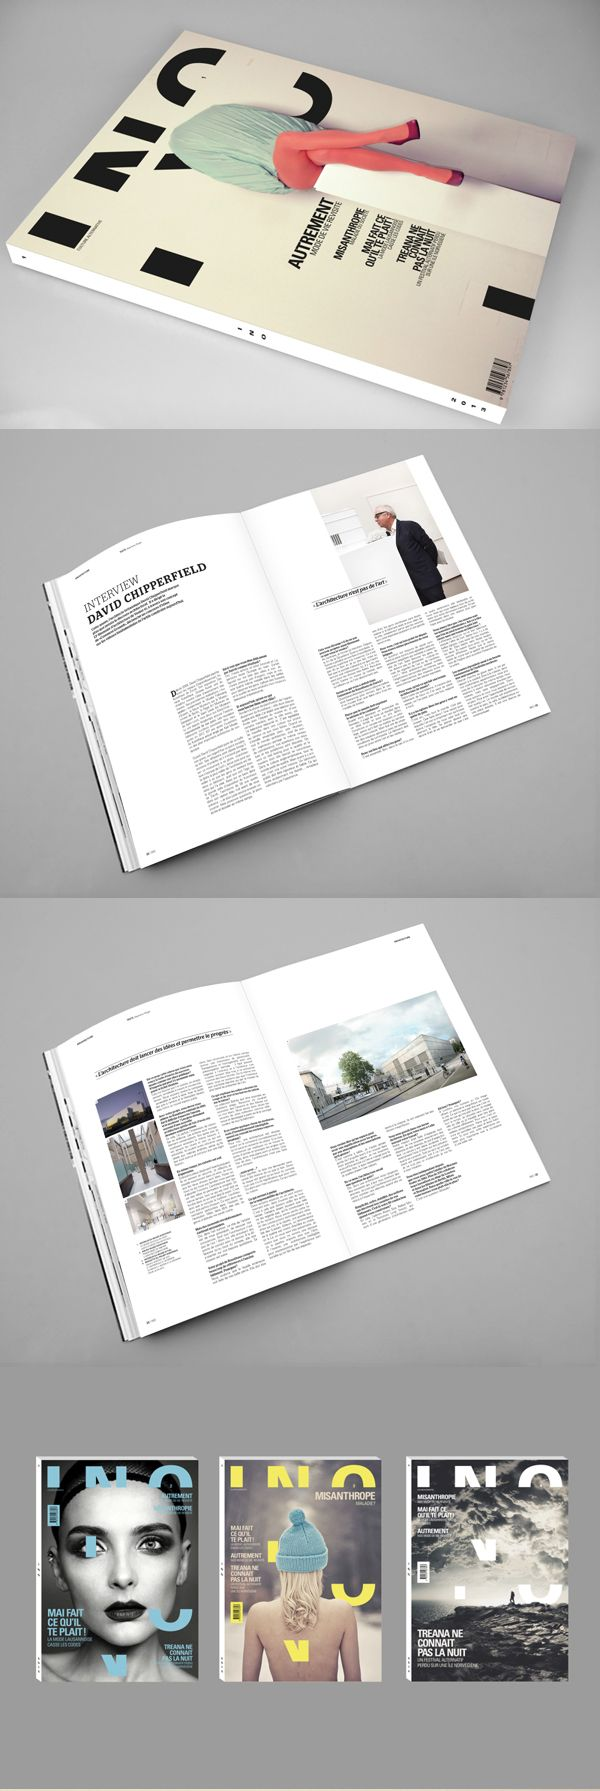 http://www.behance.net/gallery/INO-magazine/12236311